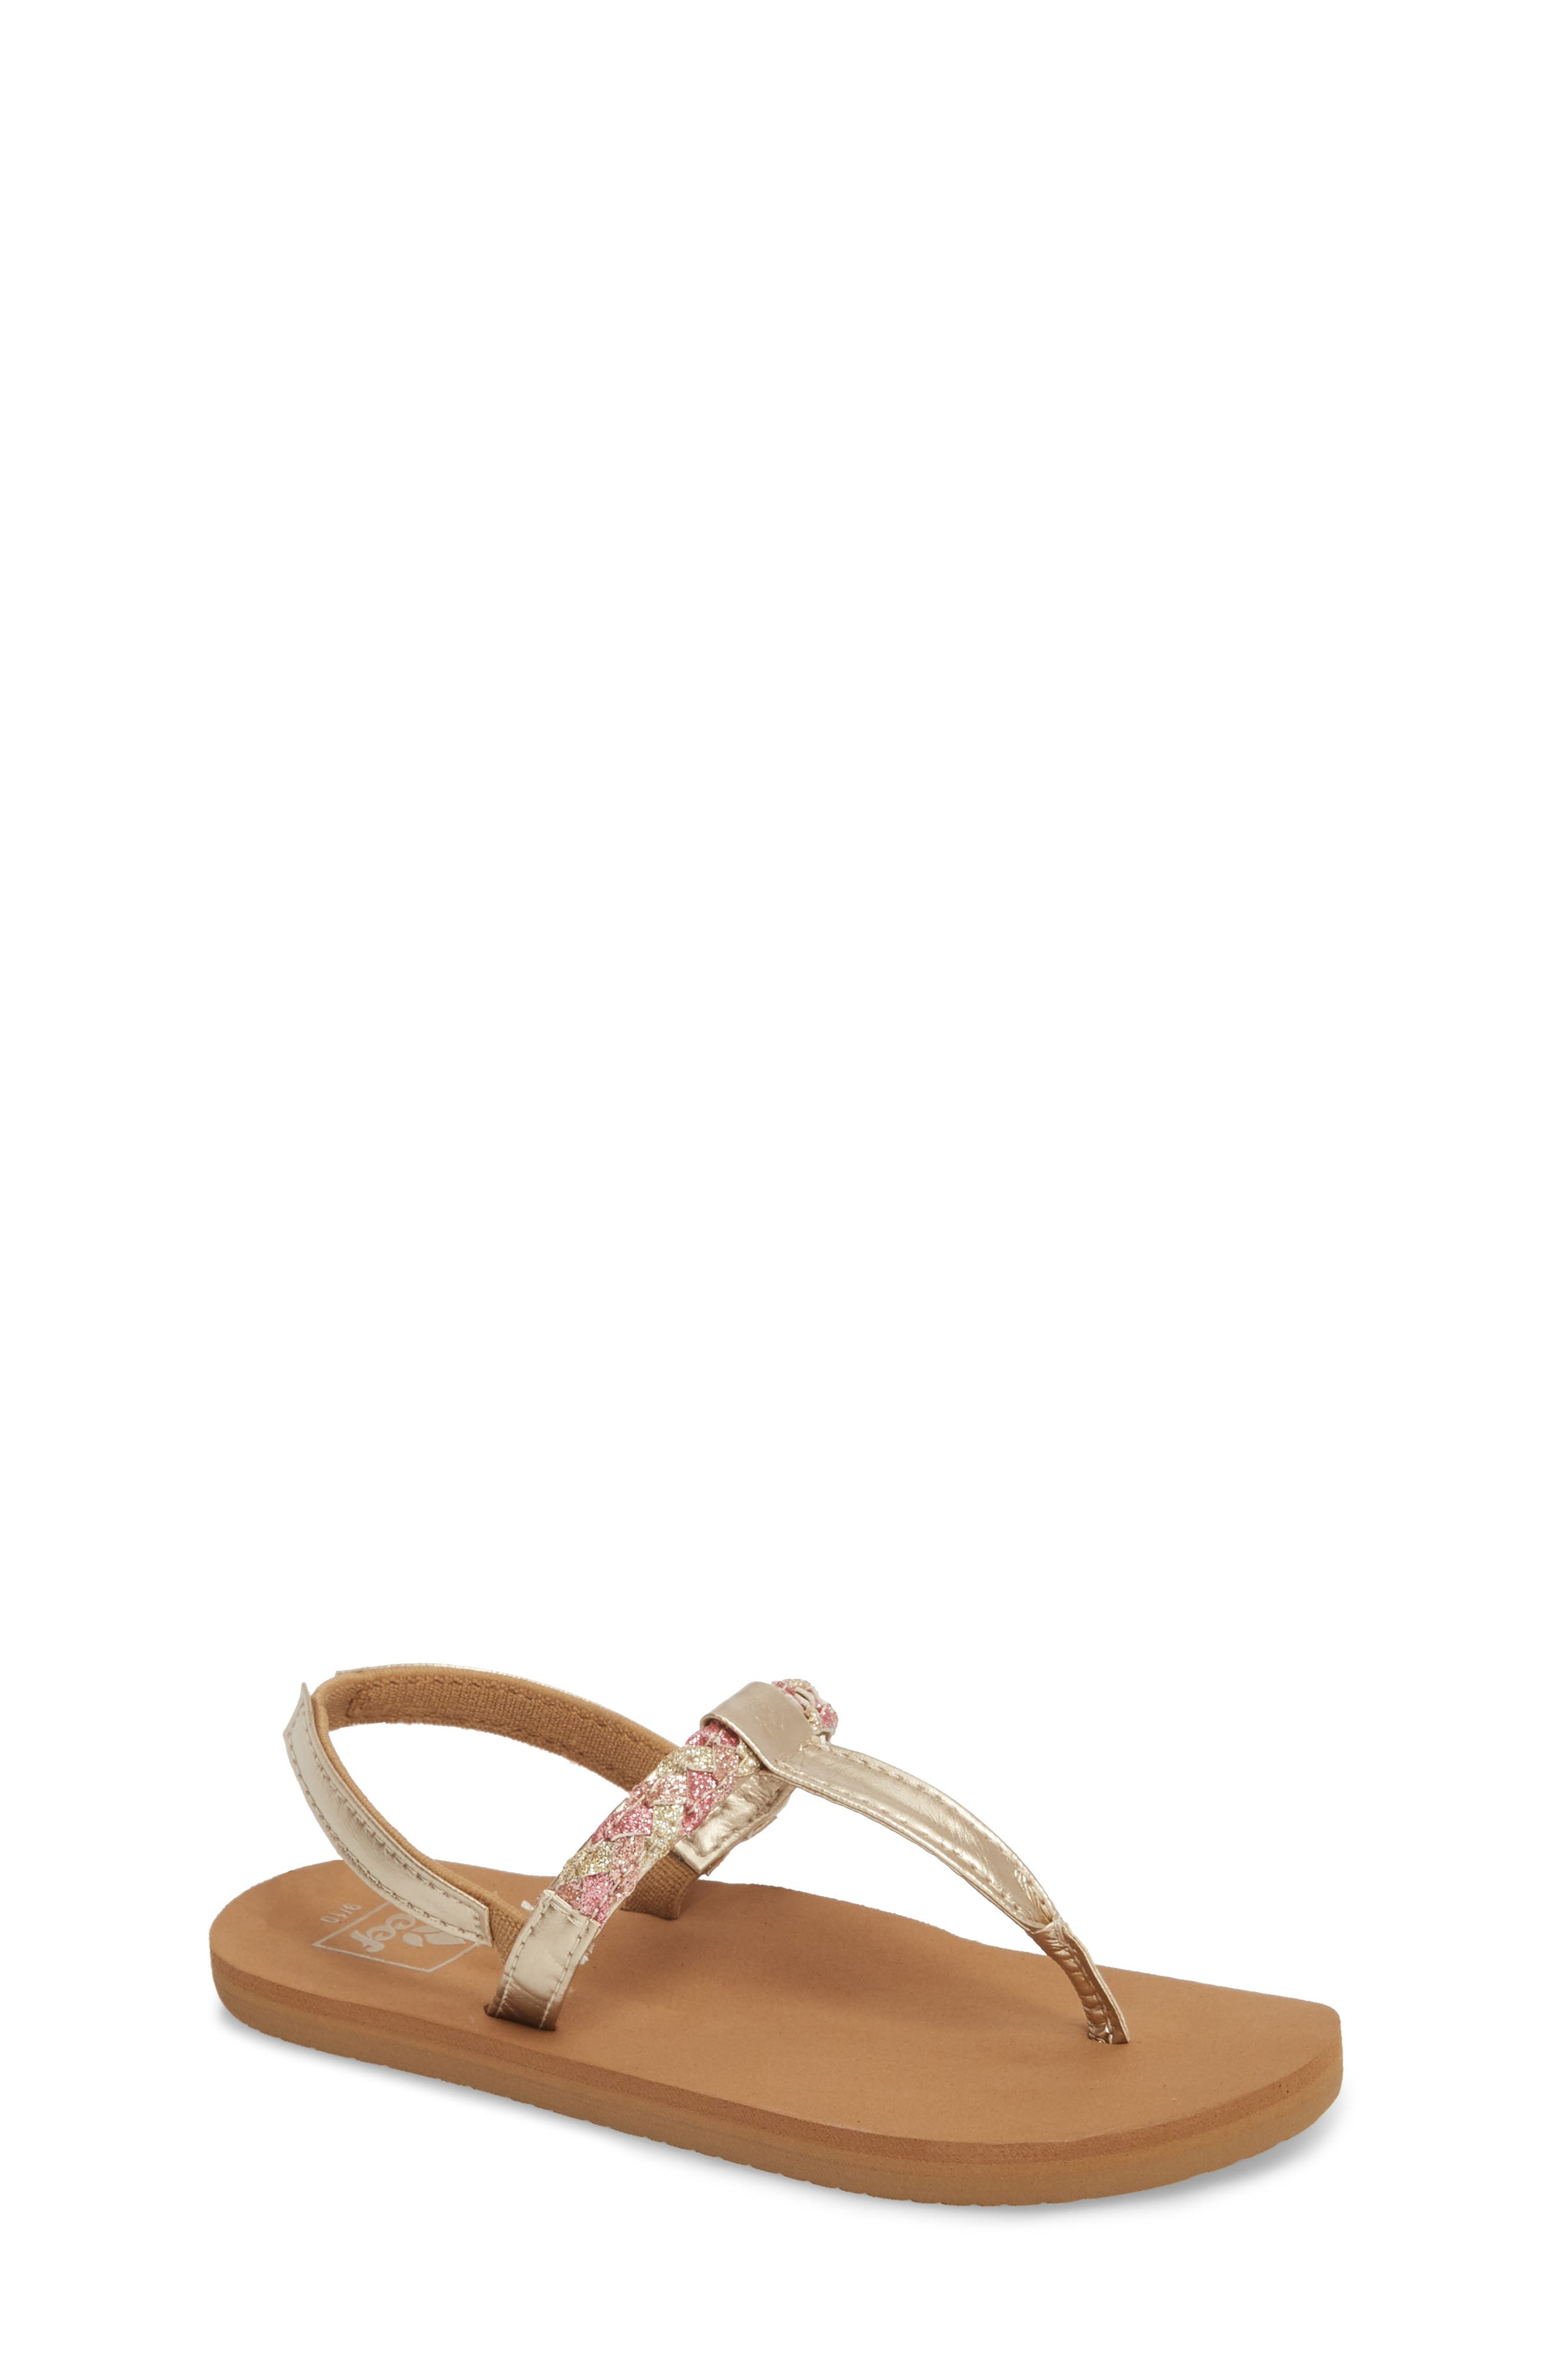 REEF Little Twisted T-Strap Sandal, Main, color, TAN